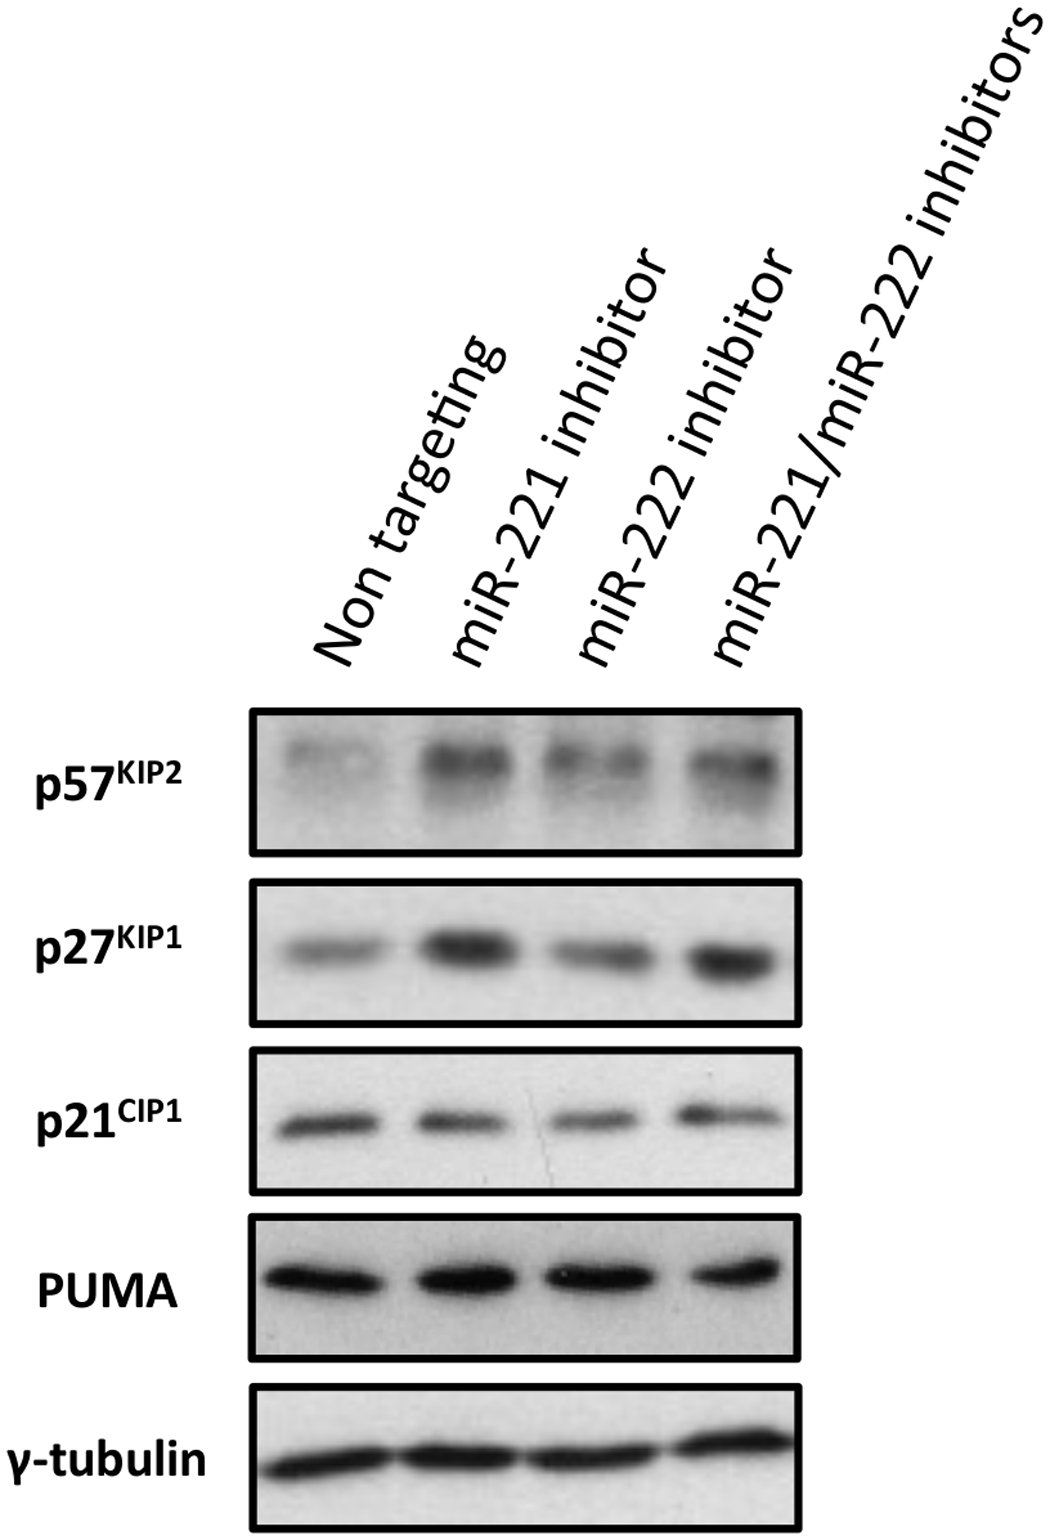 Inactivation of miR-221 and miR-222 in LCLs with corresponding anti-miRs.